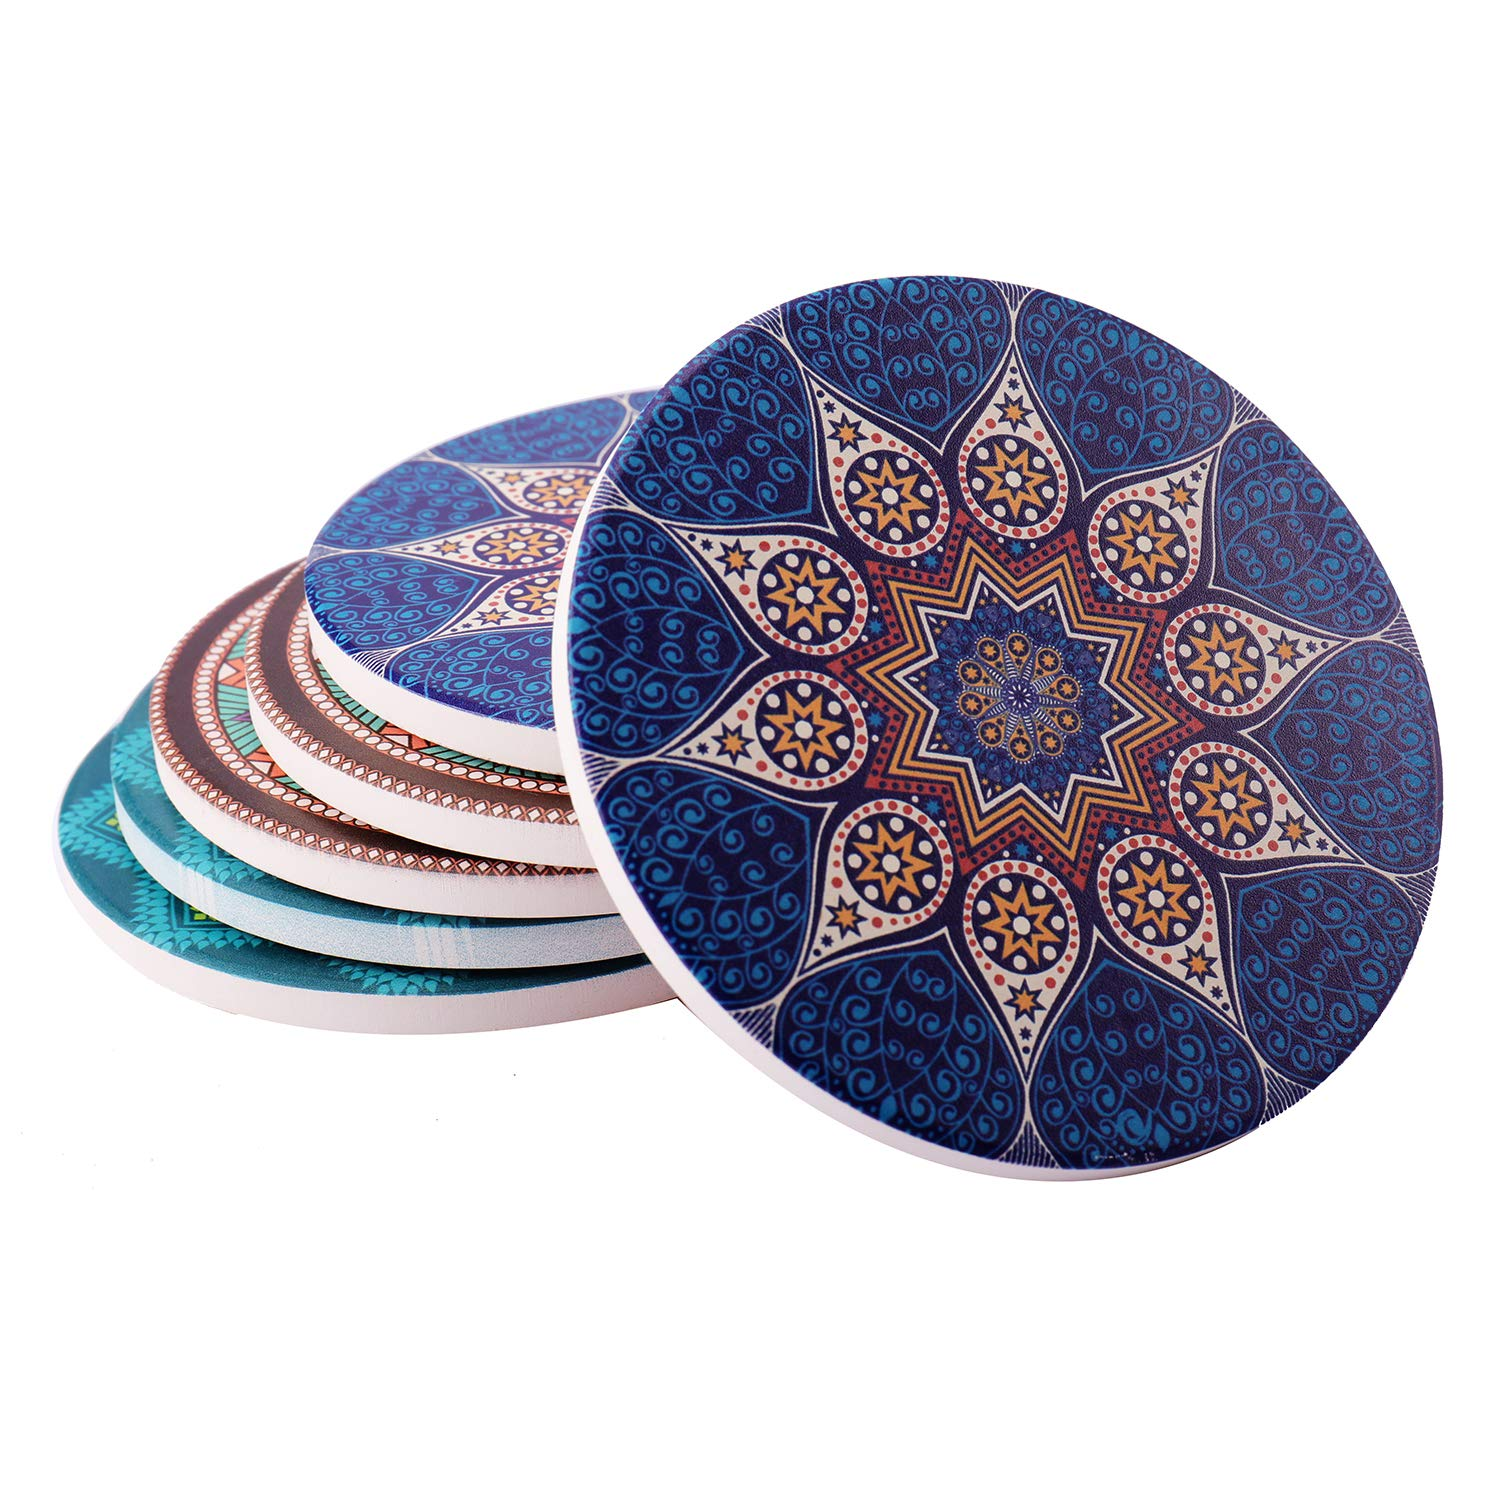 Absorbent Ceramic Coasters for Drinks - 6 Pack Mandala Patterns with Cork Back,Drink spills coasters, Coffee Mug Place Mats